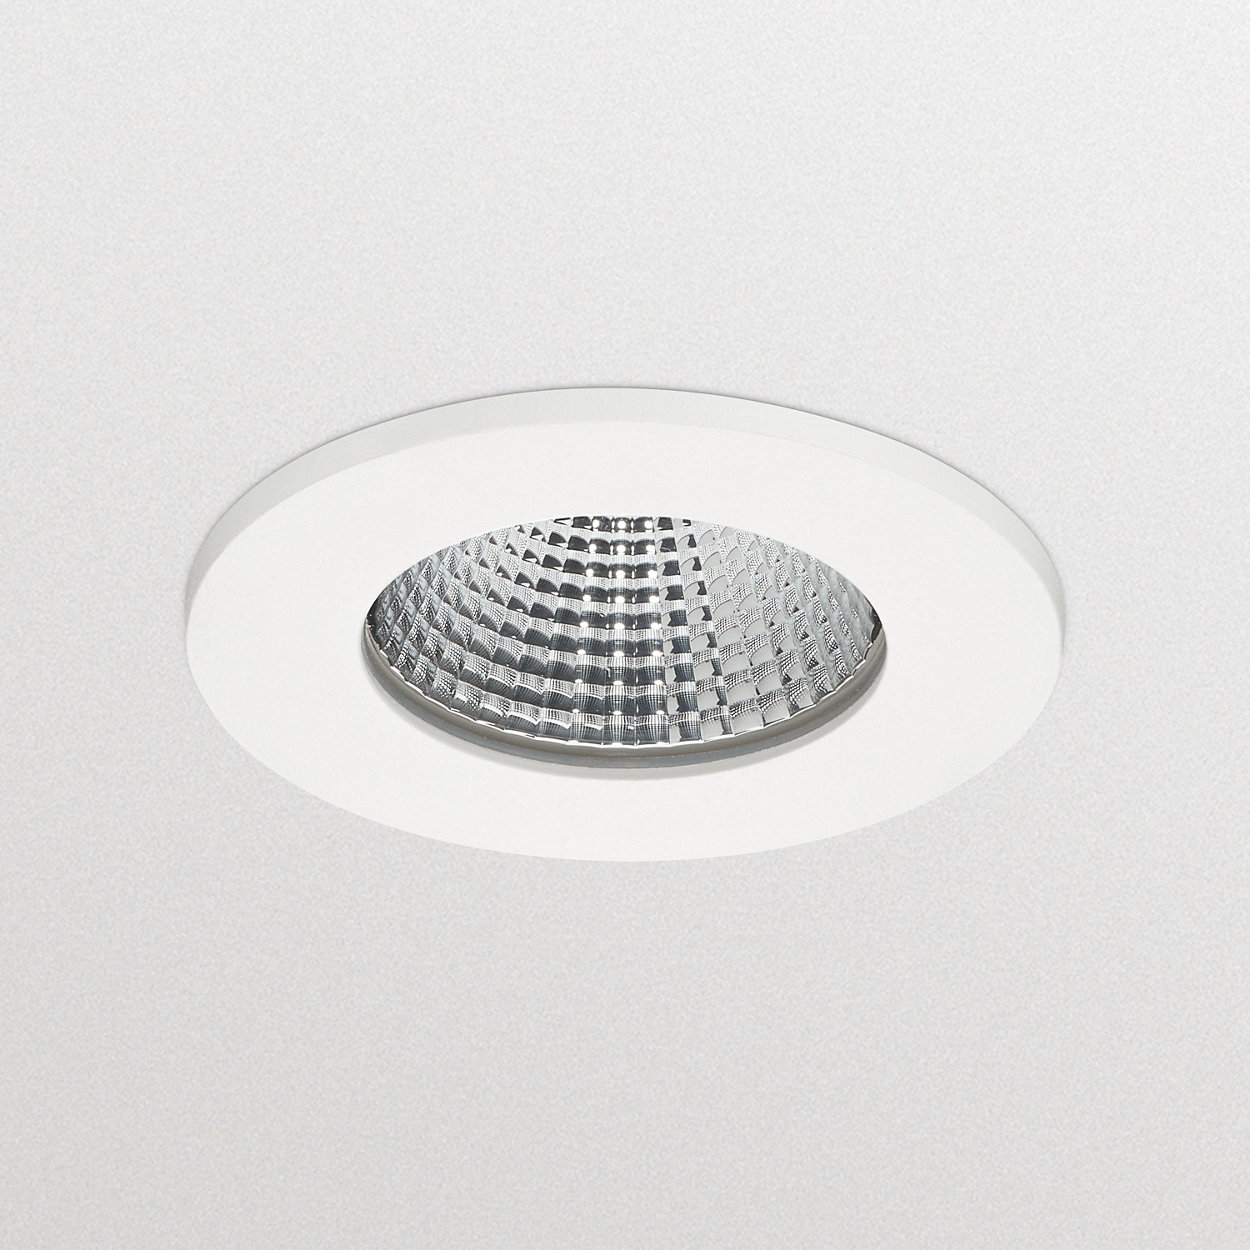 ClearAccent - Affordable recessed LED spot